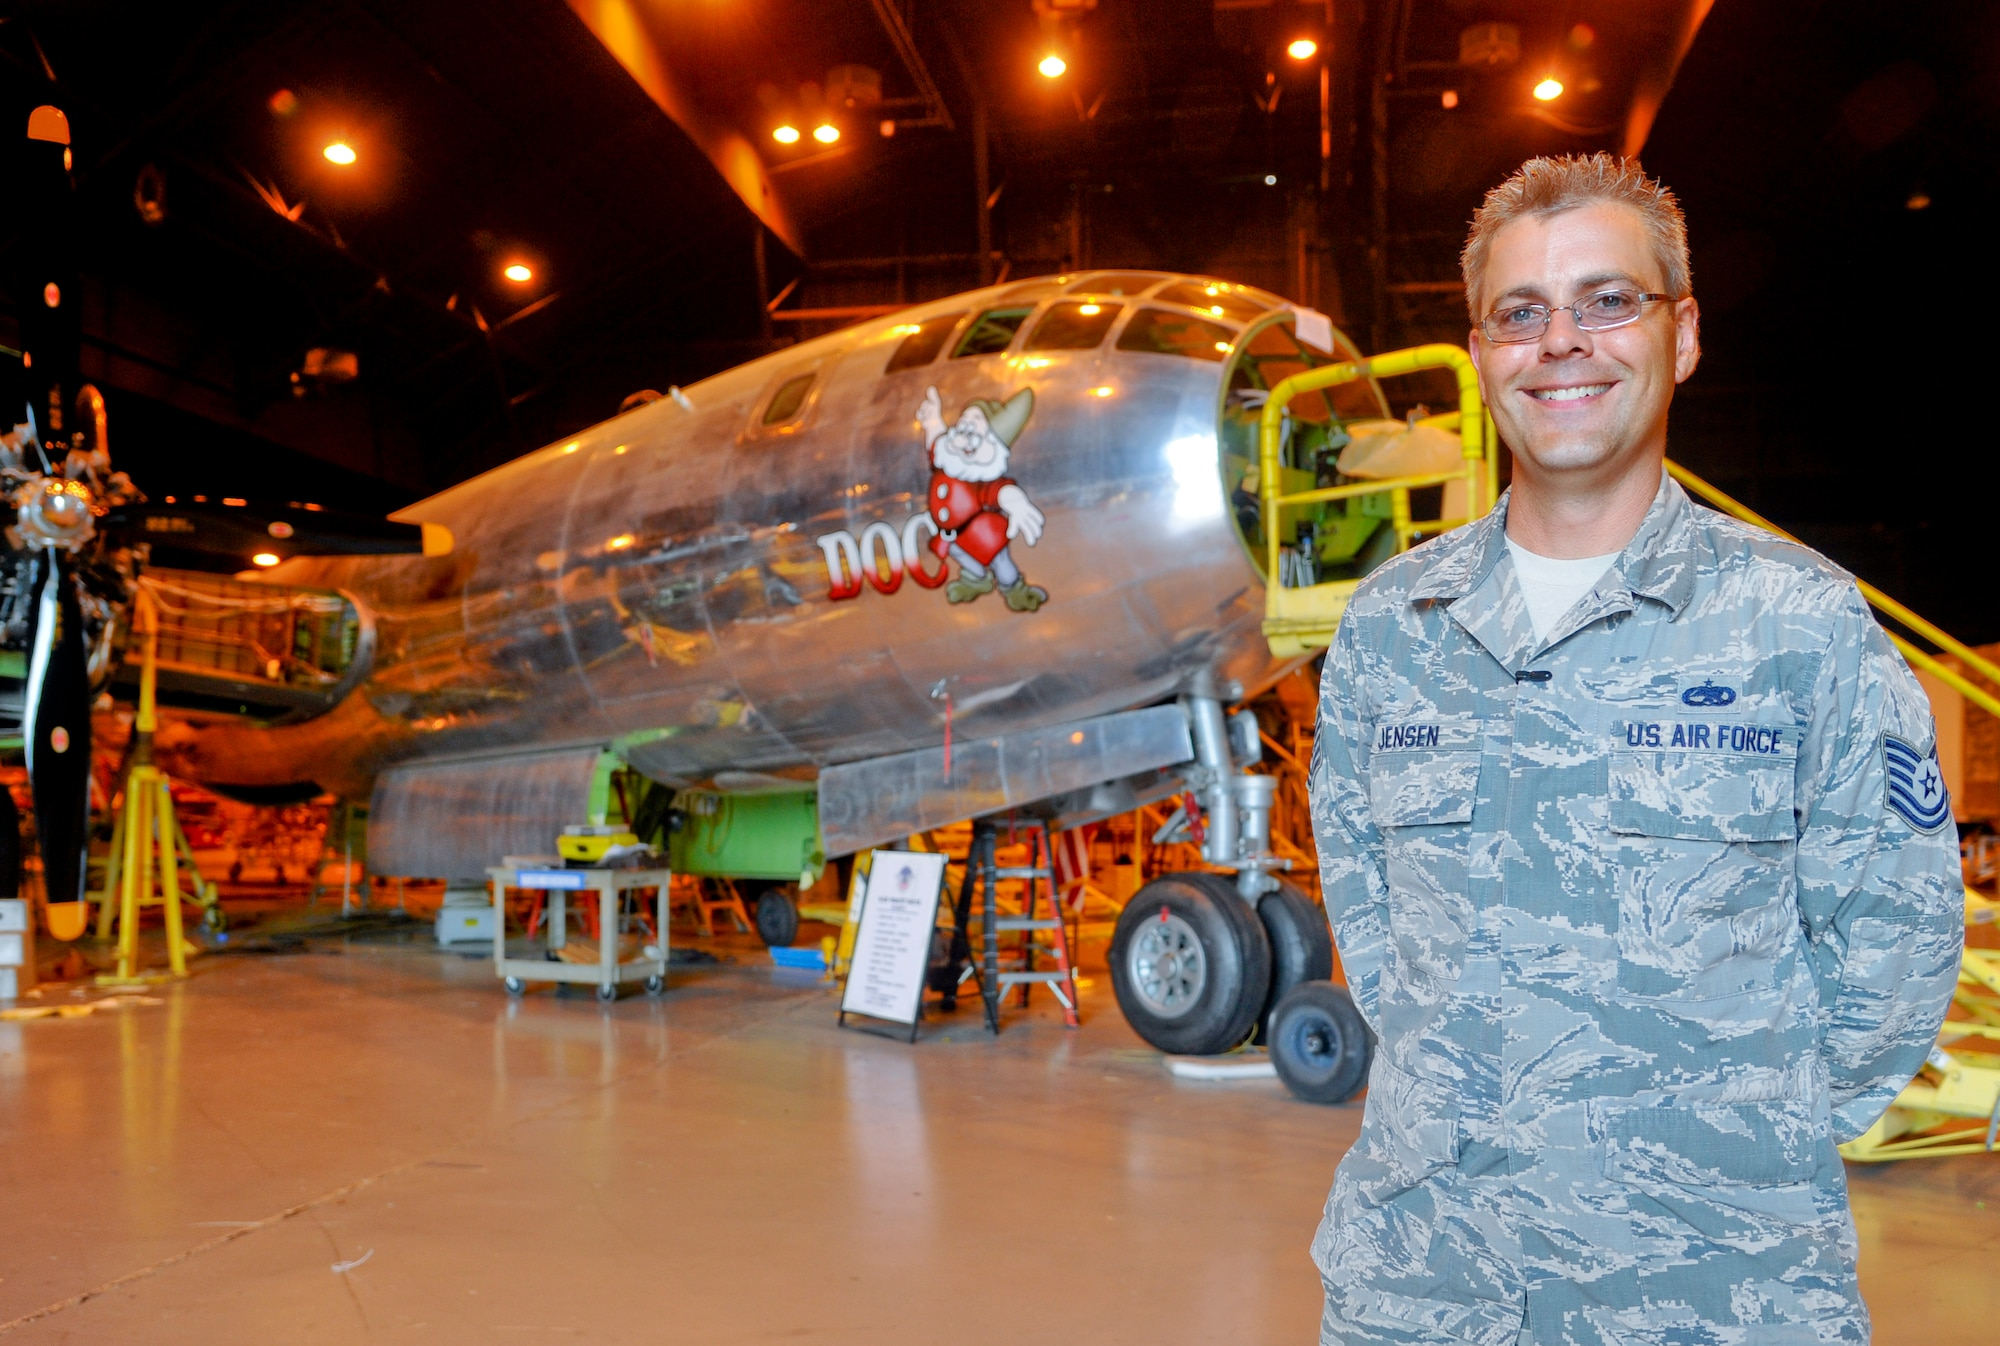 Tech. Sgt. Geoffrey Jensen stands in front of 'Doc,' a Boeing B-29 Superfortress, July 22, 2014, in Wichita, Kansas. Jensen joined a volunteer group, Doc's Friends, which is restoring the aircraft to flying condition. Jensen is the 22nd Maintenance Group logistic resource management program NCO in charge. (U.S. Air Force photo/Airman 1st Class John Linzmeier)